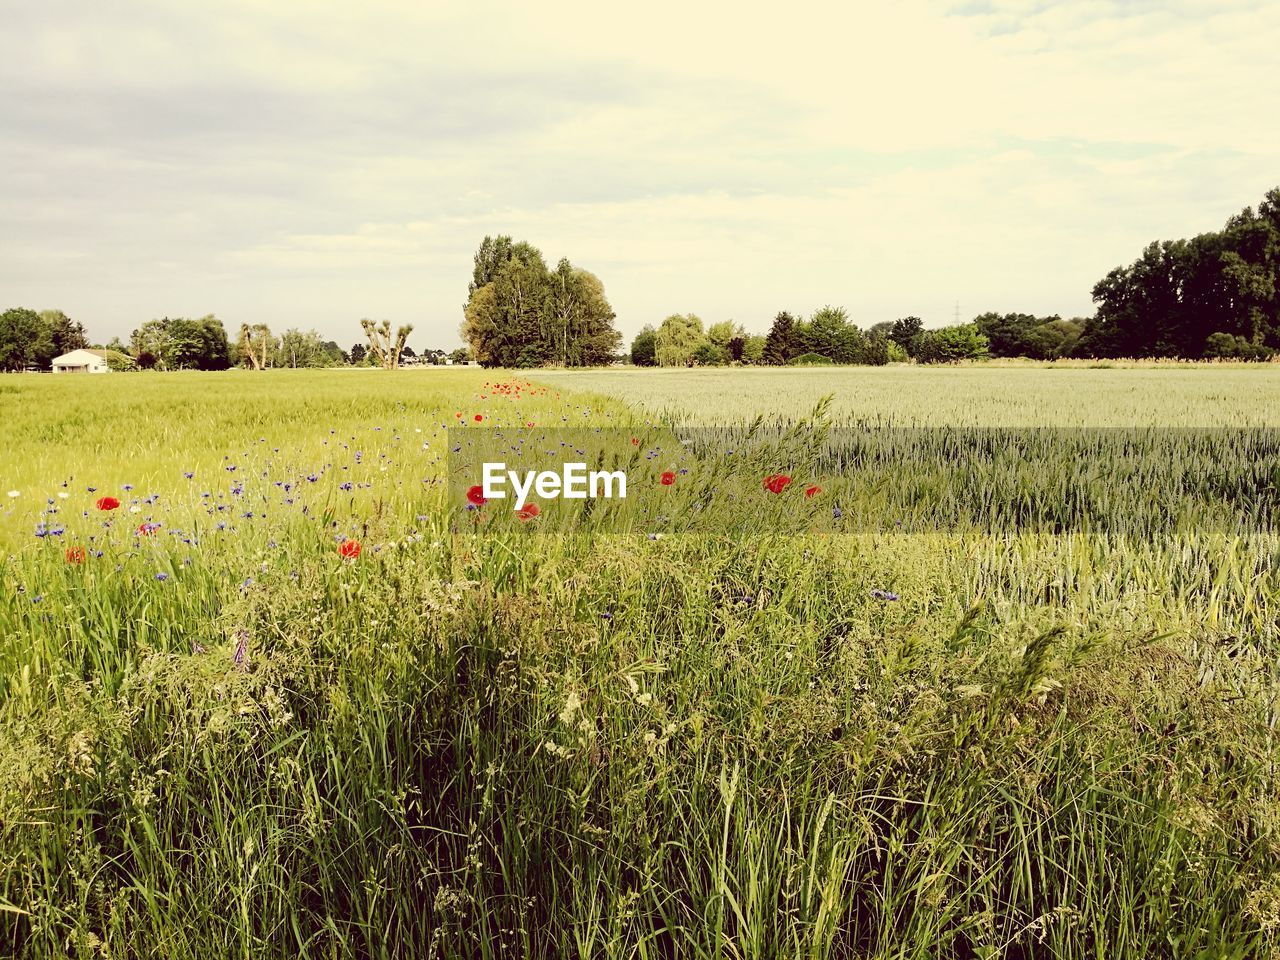 growth, field, nature, beauty in nature, tranquility, landscape, sky, agriculture, grass, plant, rural scene, crop, scenics, no people, tree, outdoors, flower, tranquil scene, day, poppy